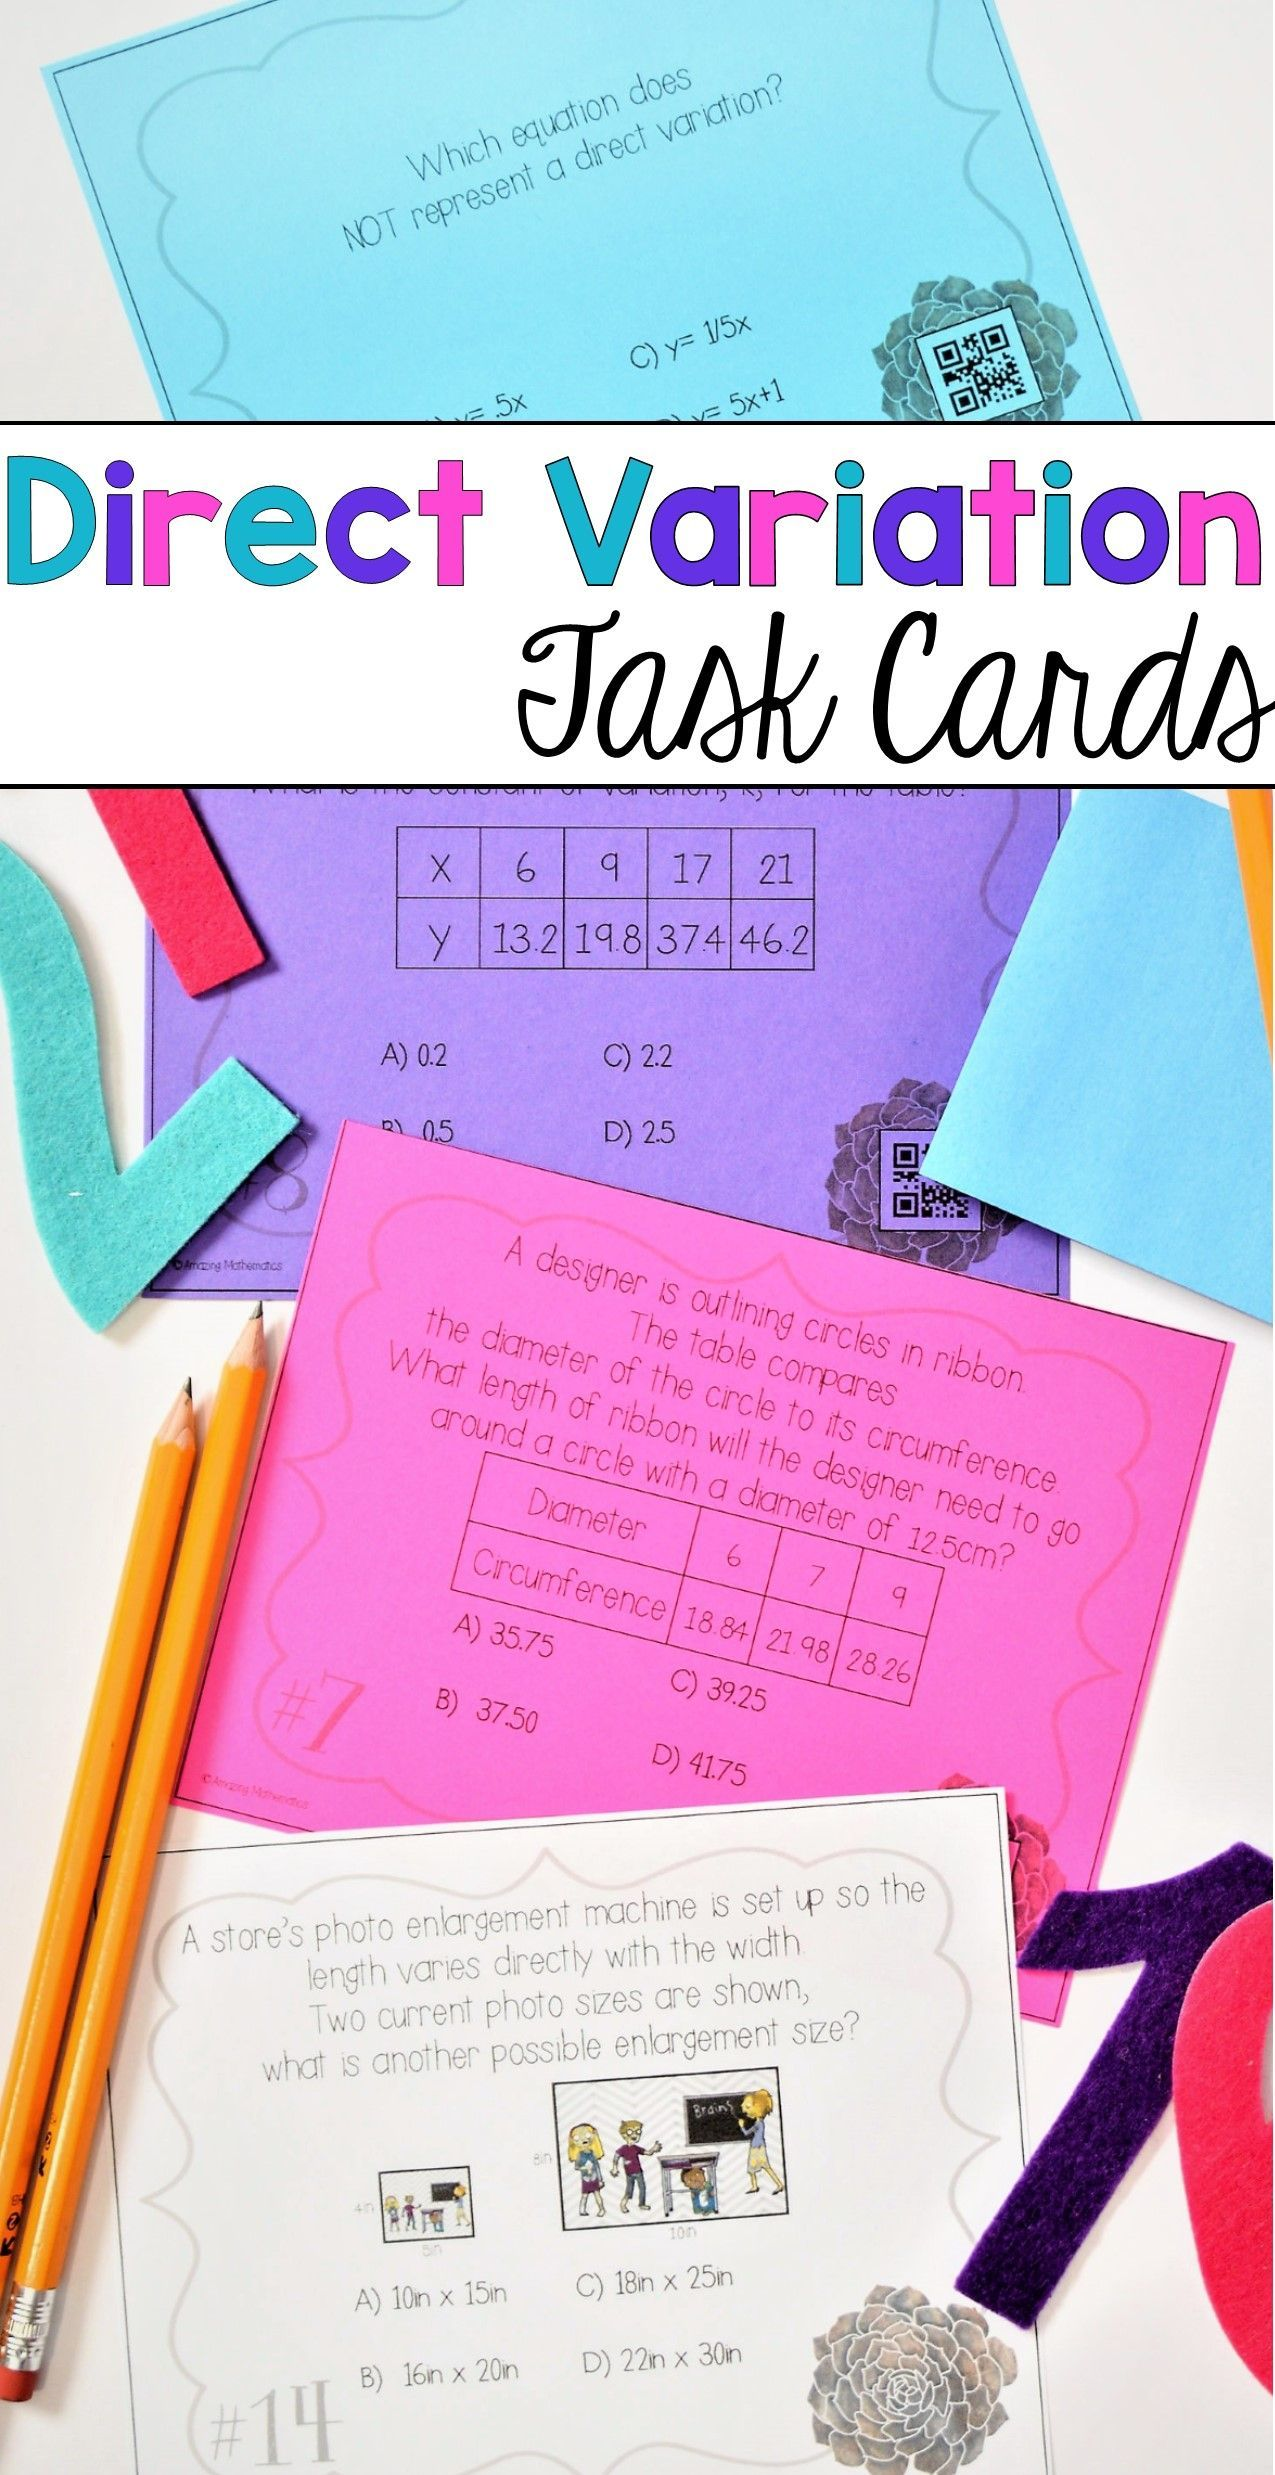 Direct Variation Task Cards With Images